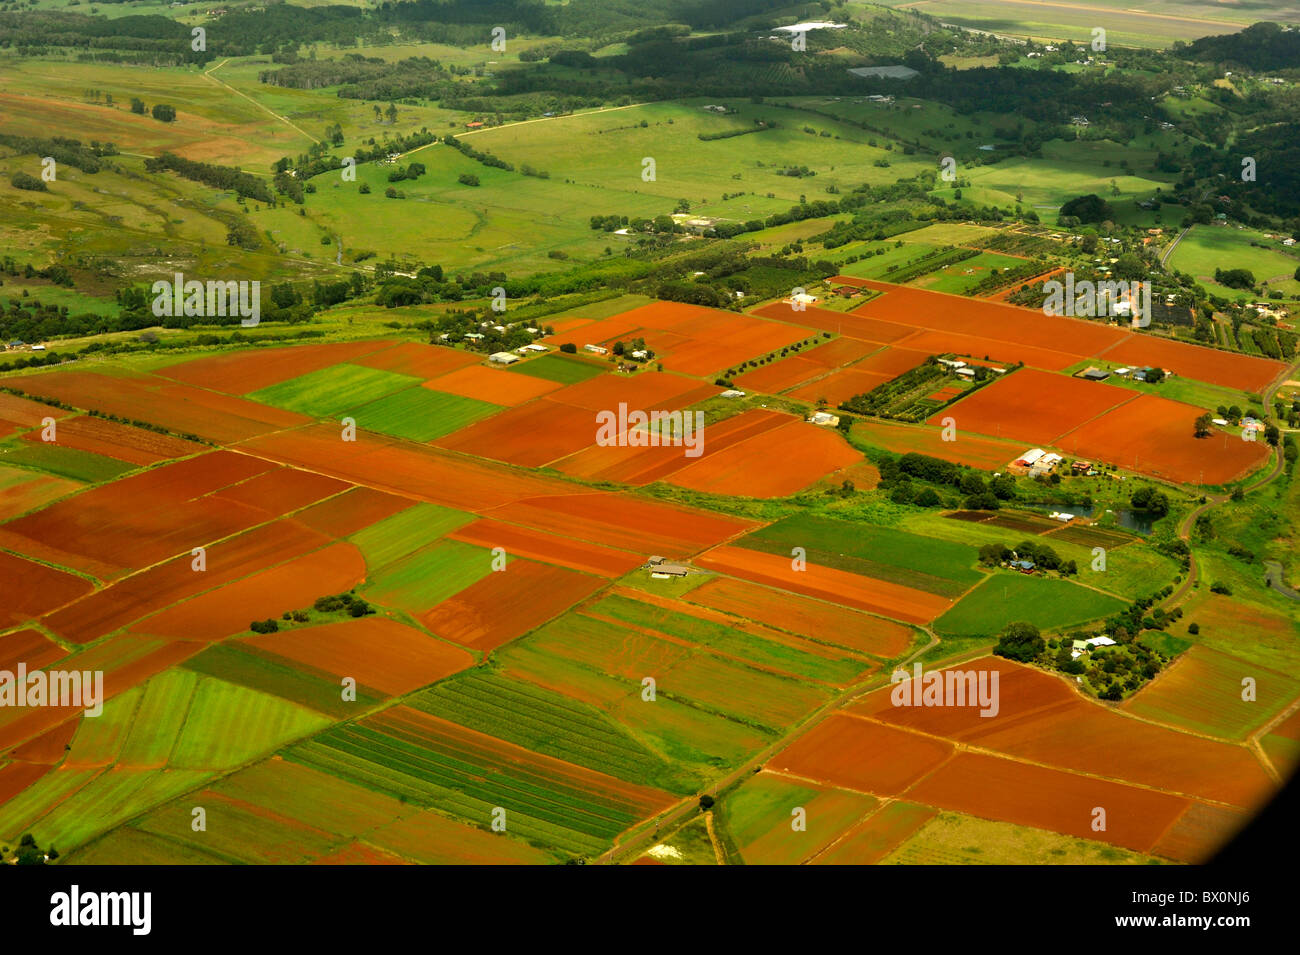 A patchwork quilt of coastal farmland in Northern NSW Australia - Stock Image